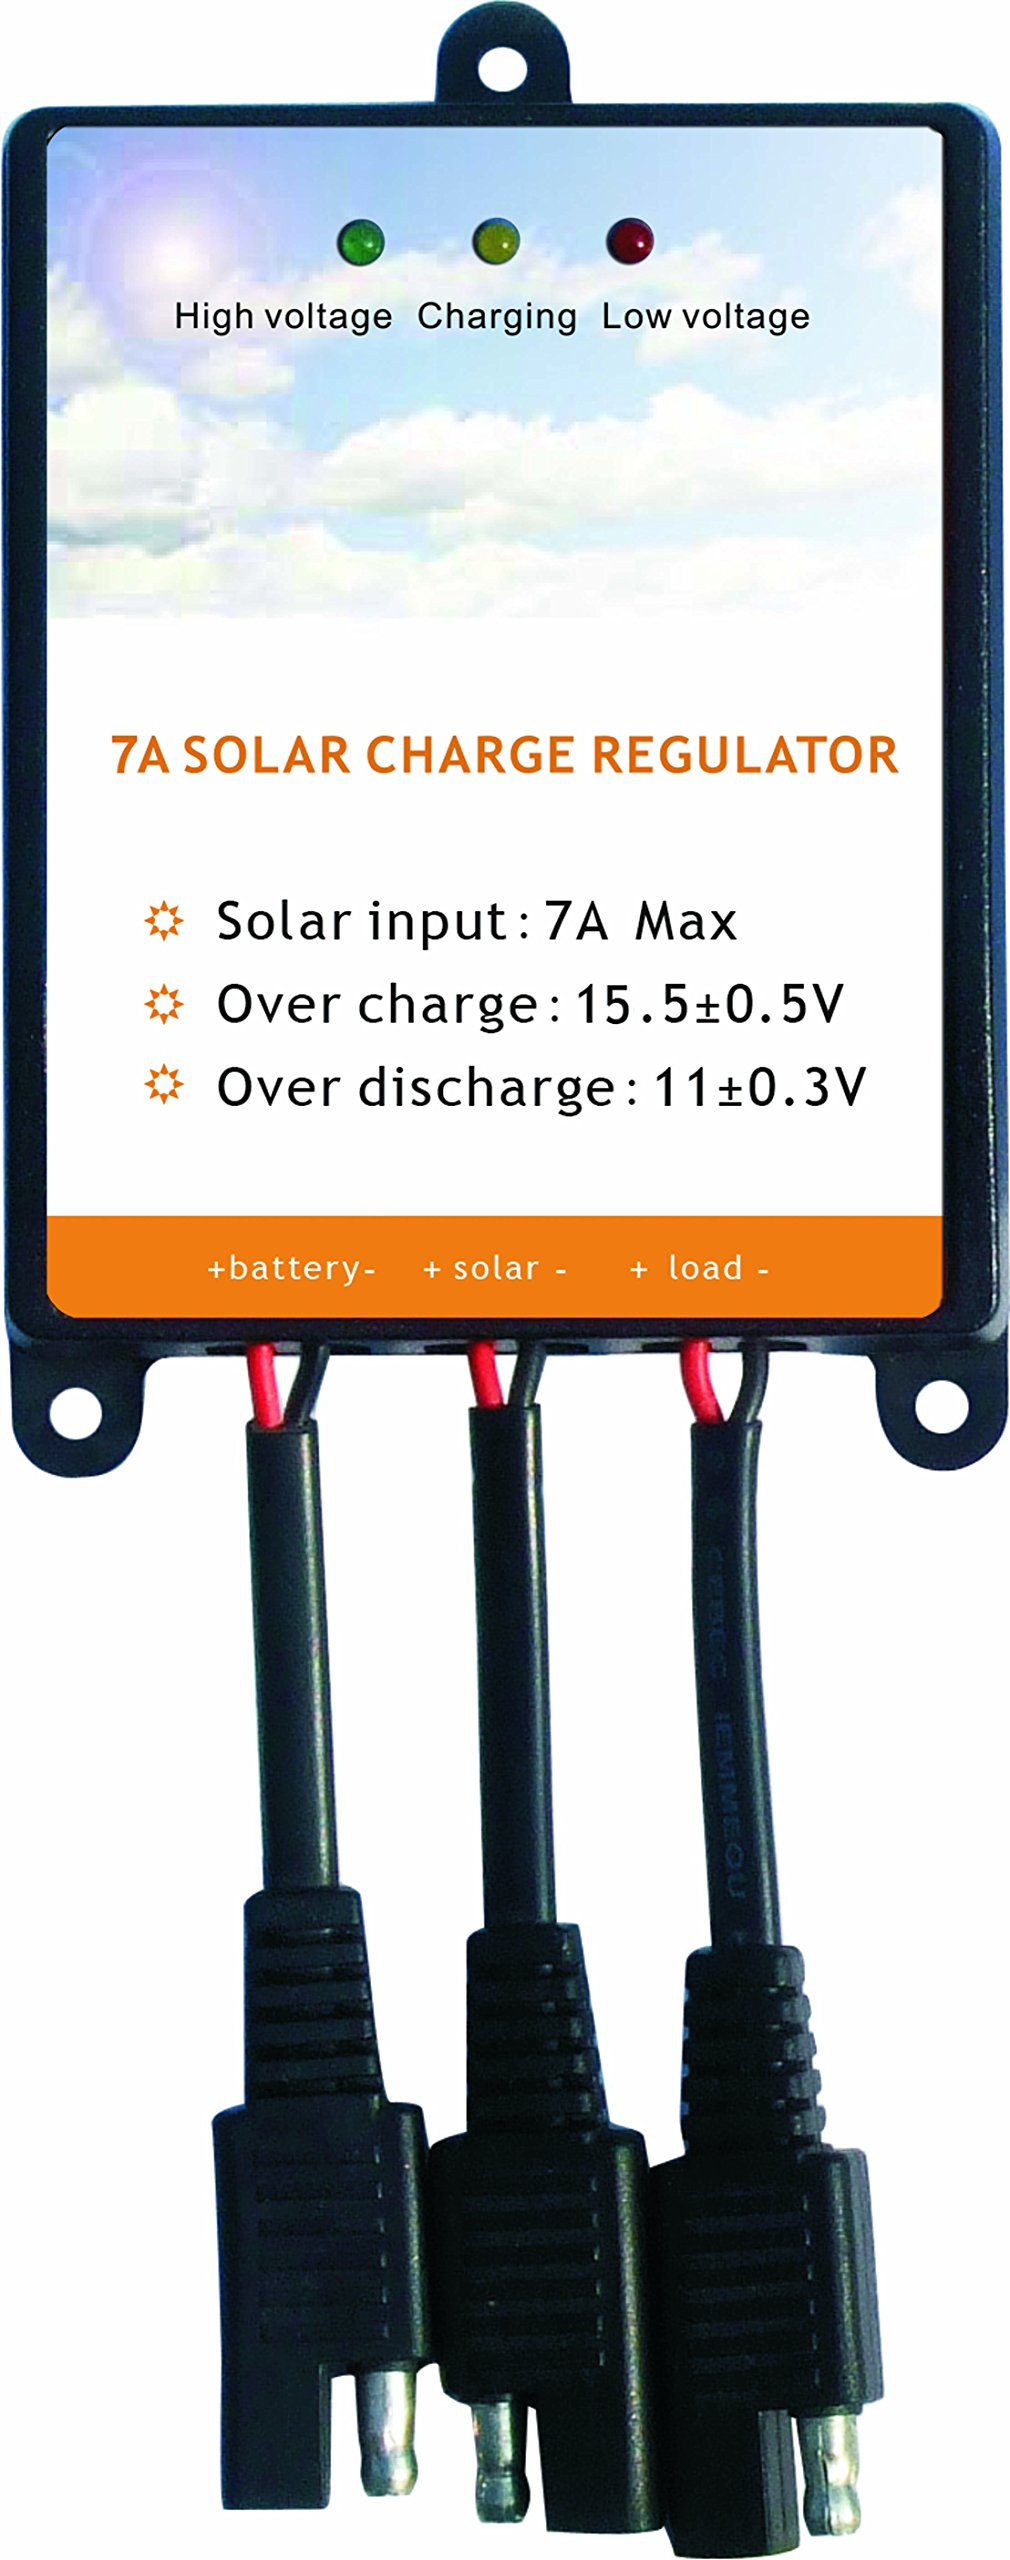 Sunway Solar Panels Charge Controller 12V Battery Regulator 7A For Safe Protection of 12Volt Solar Power Battery Charger, Solar Trickle Charger & Maintainer and Solar Powered System Kit by Sunway Solar